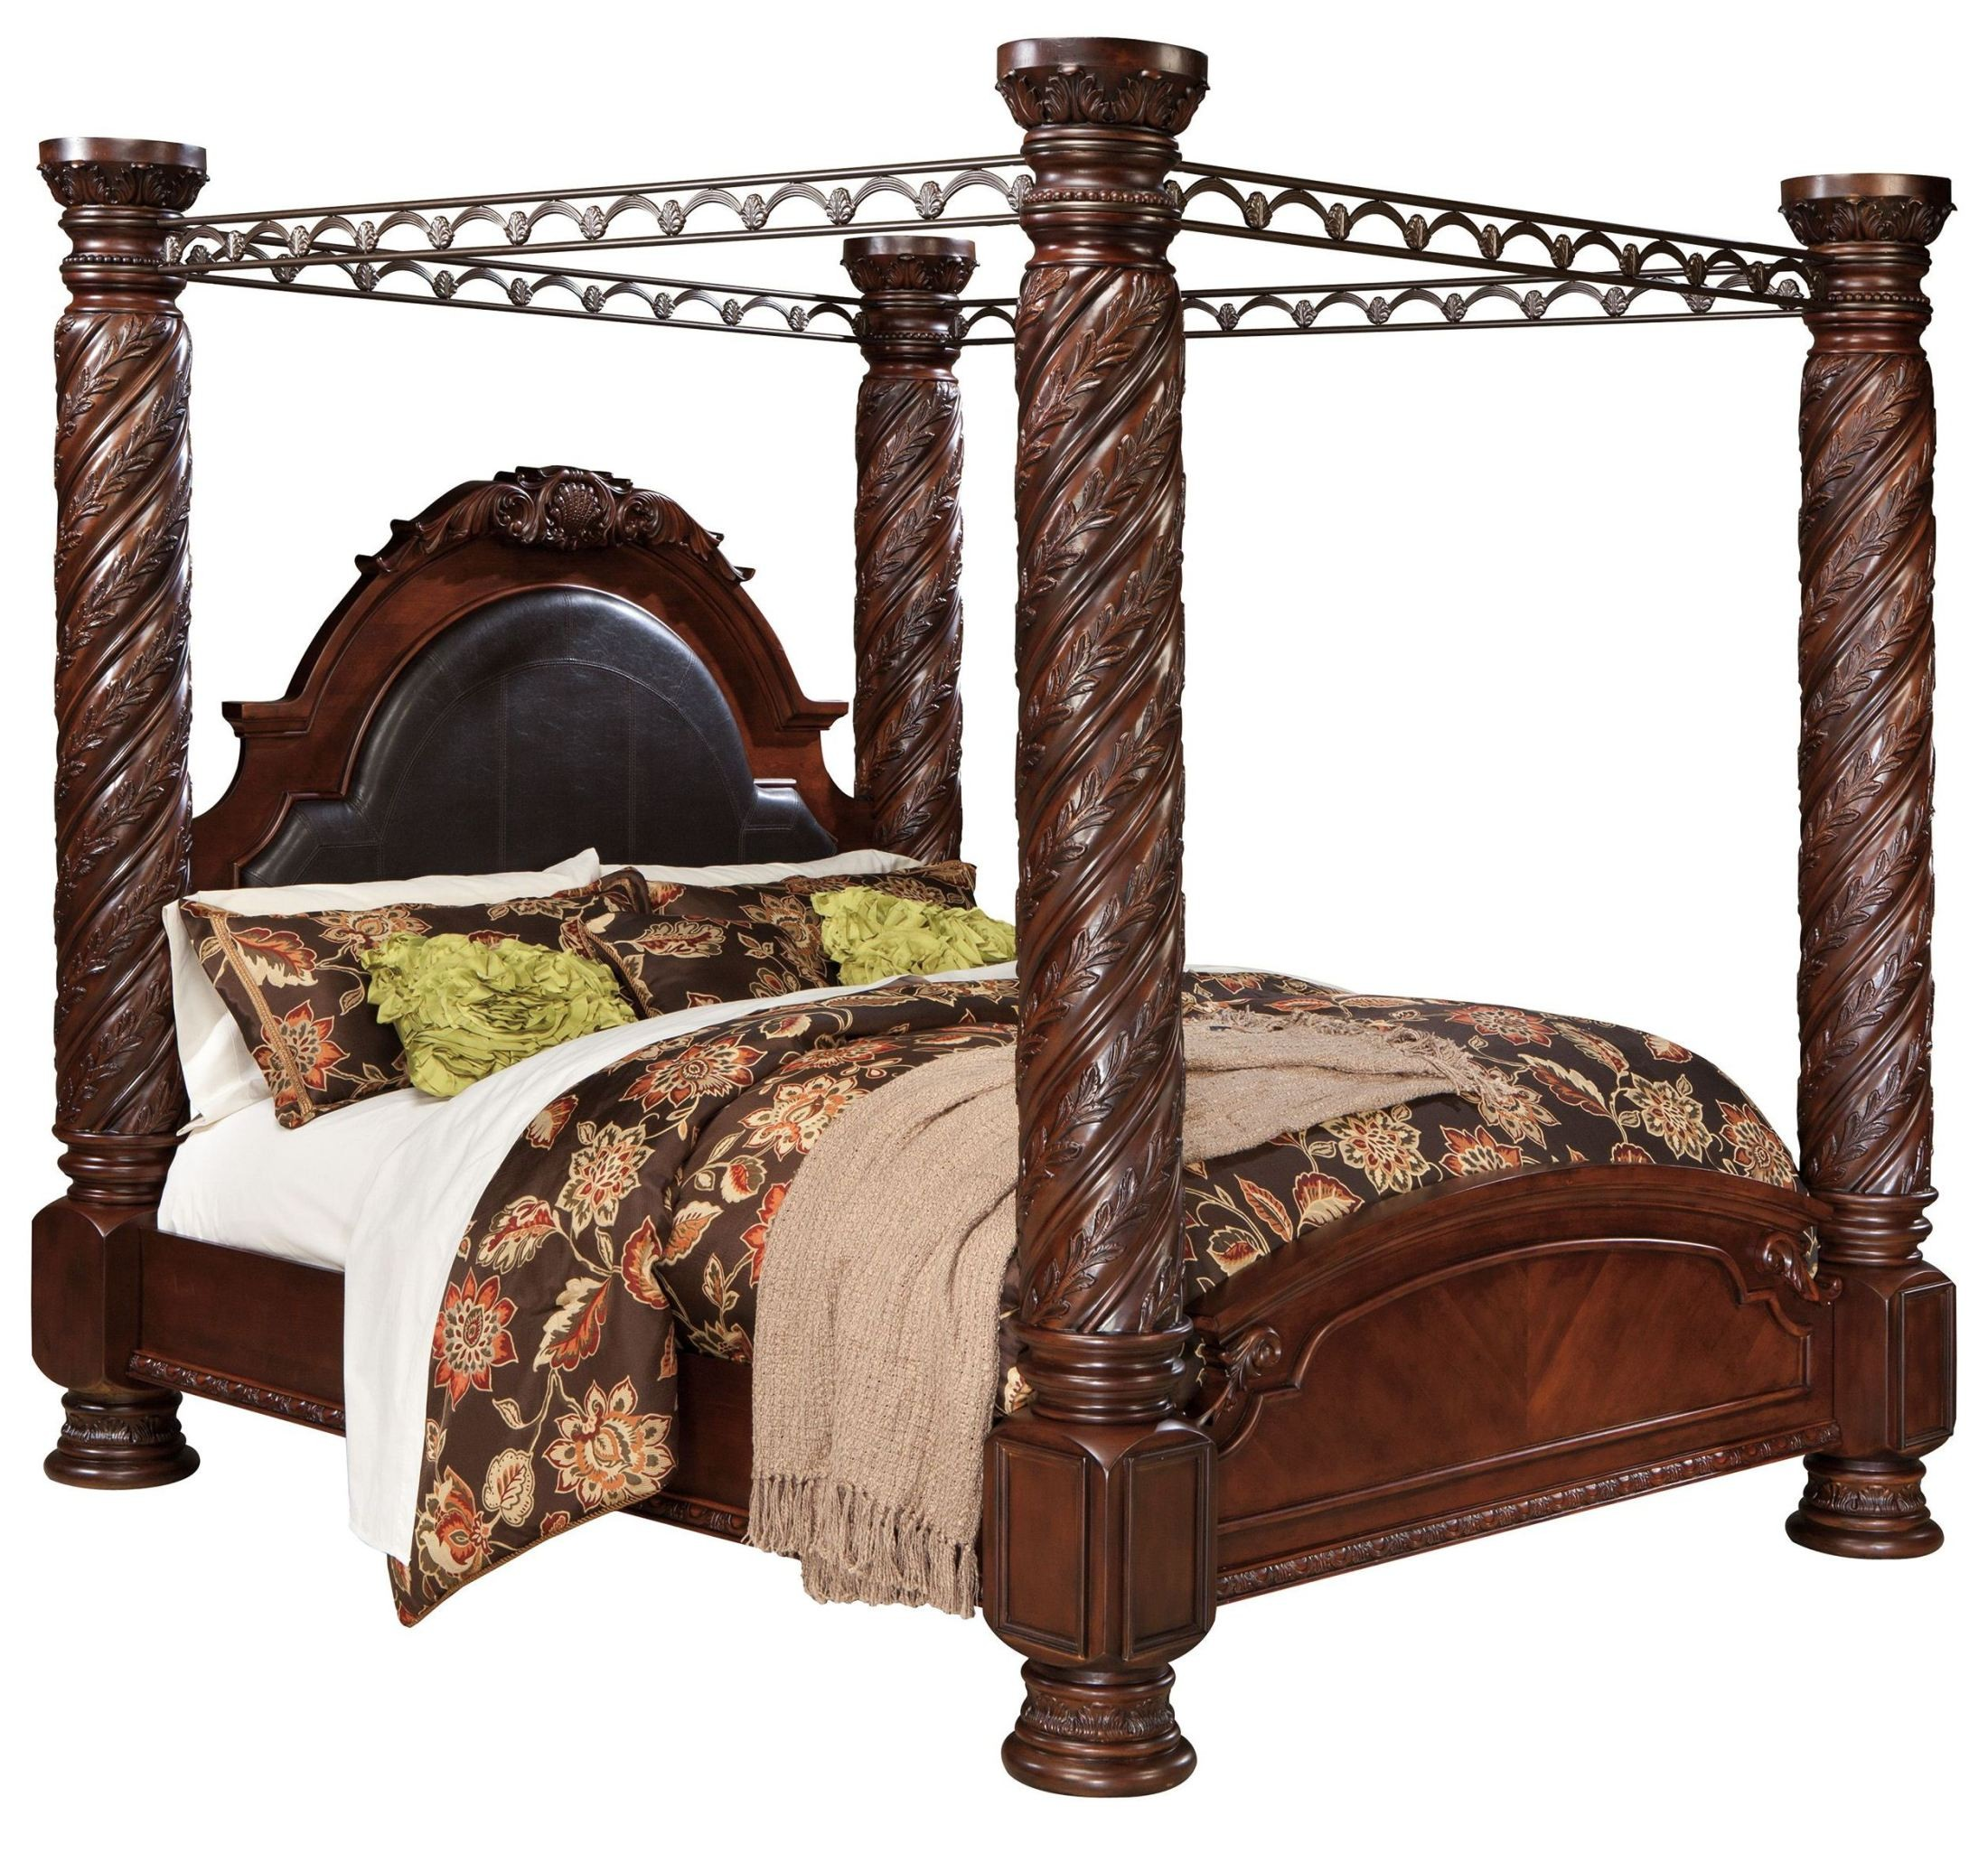 King Canopy Bedroom Sets north shore poster canopy bedroom set from ashley (b553) | coleman